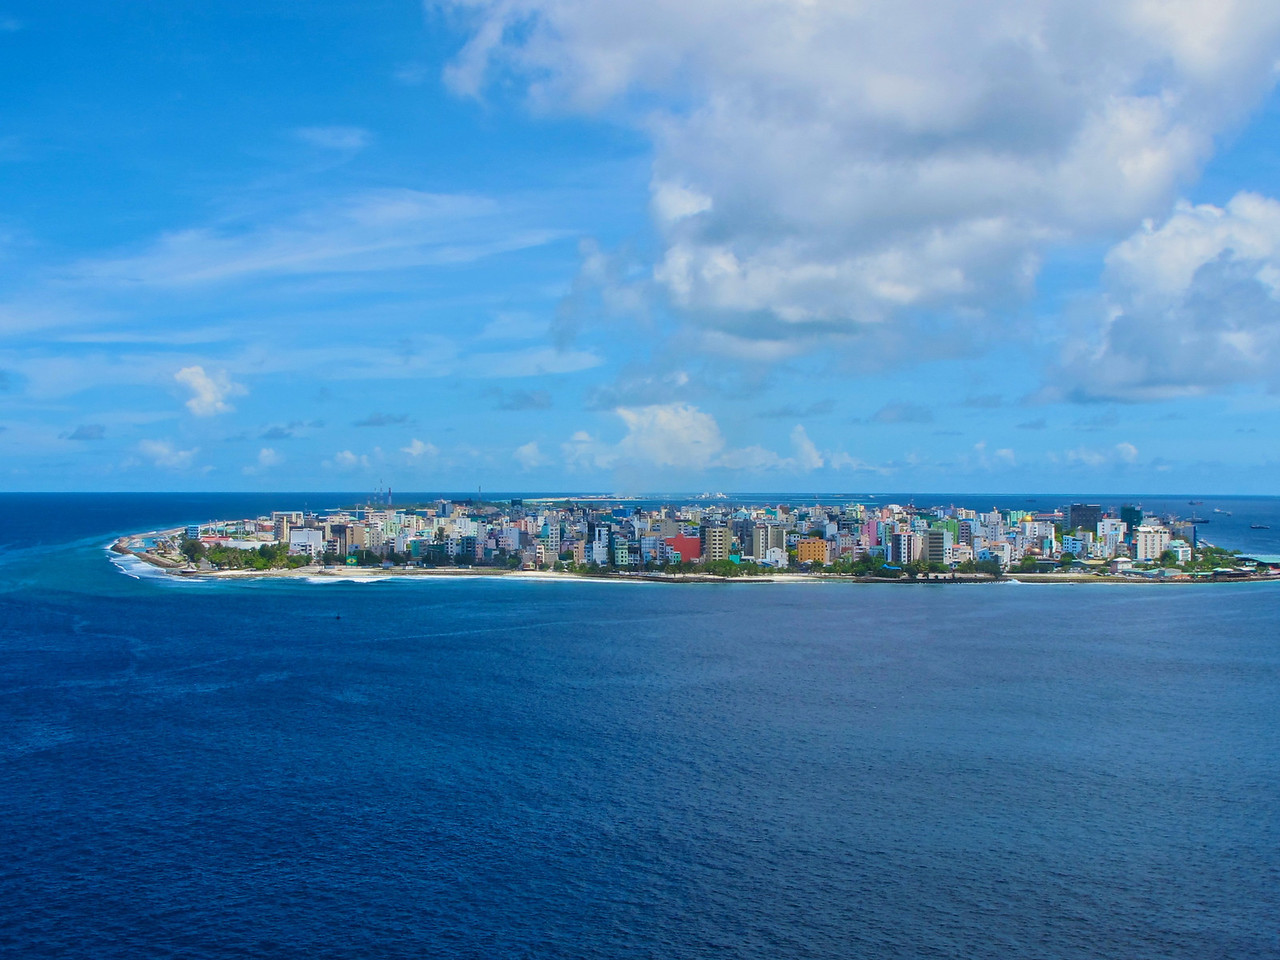 The <br /> Maldives's capital and largest city is Malé, with a population of 103,693 (2006). It is located at the southern edge of North Malé Atoll, in the Kaafu Atoll.